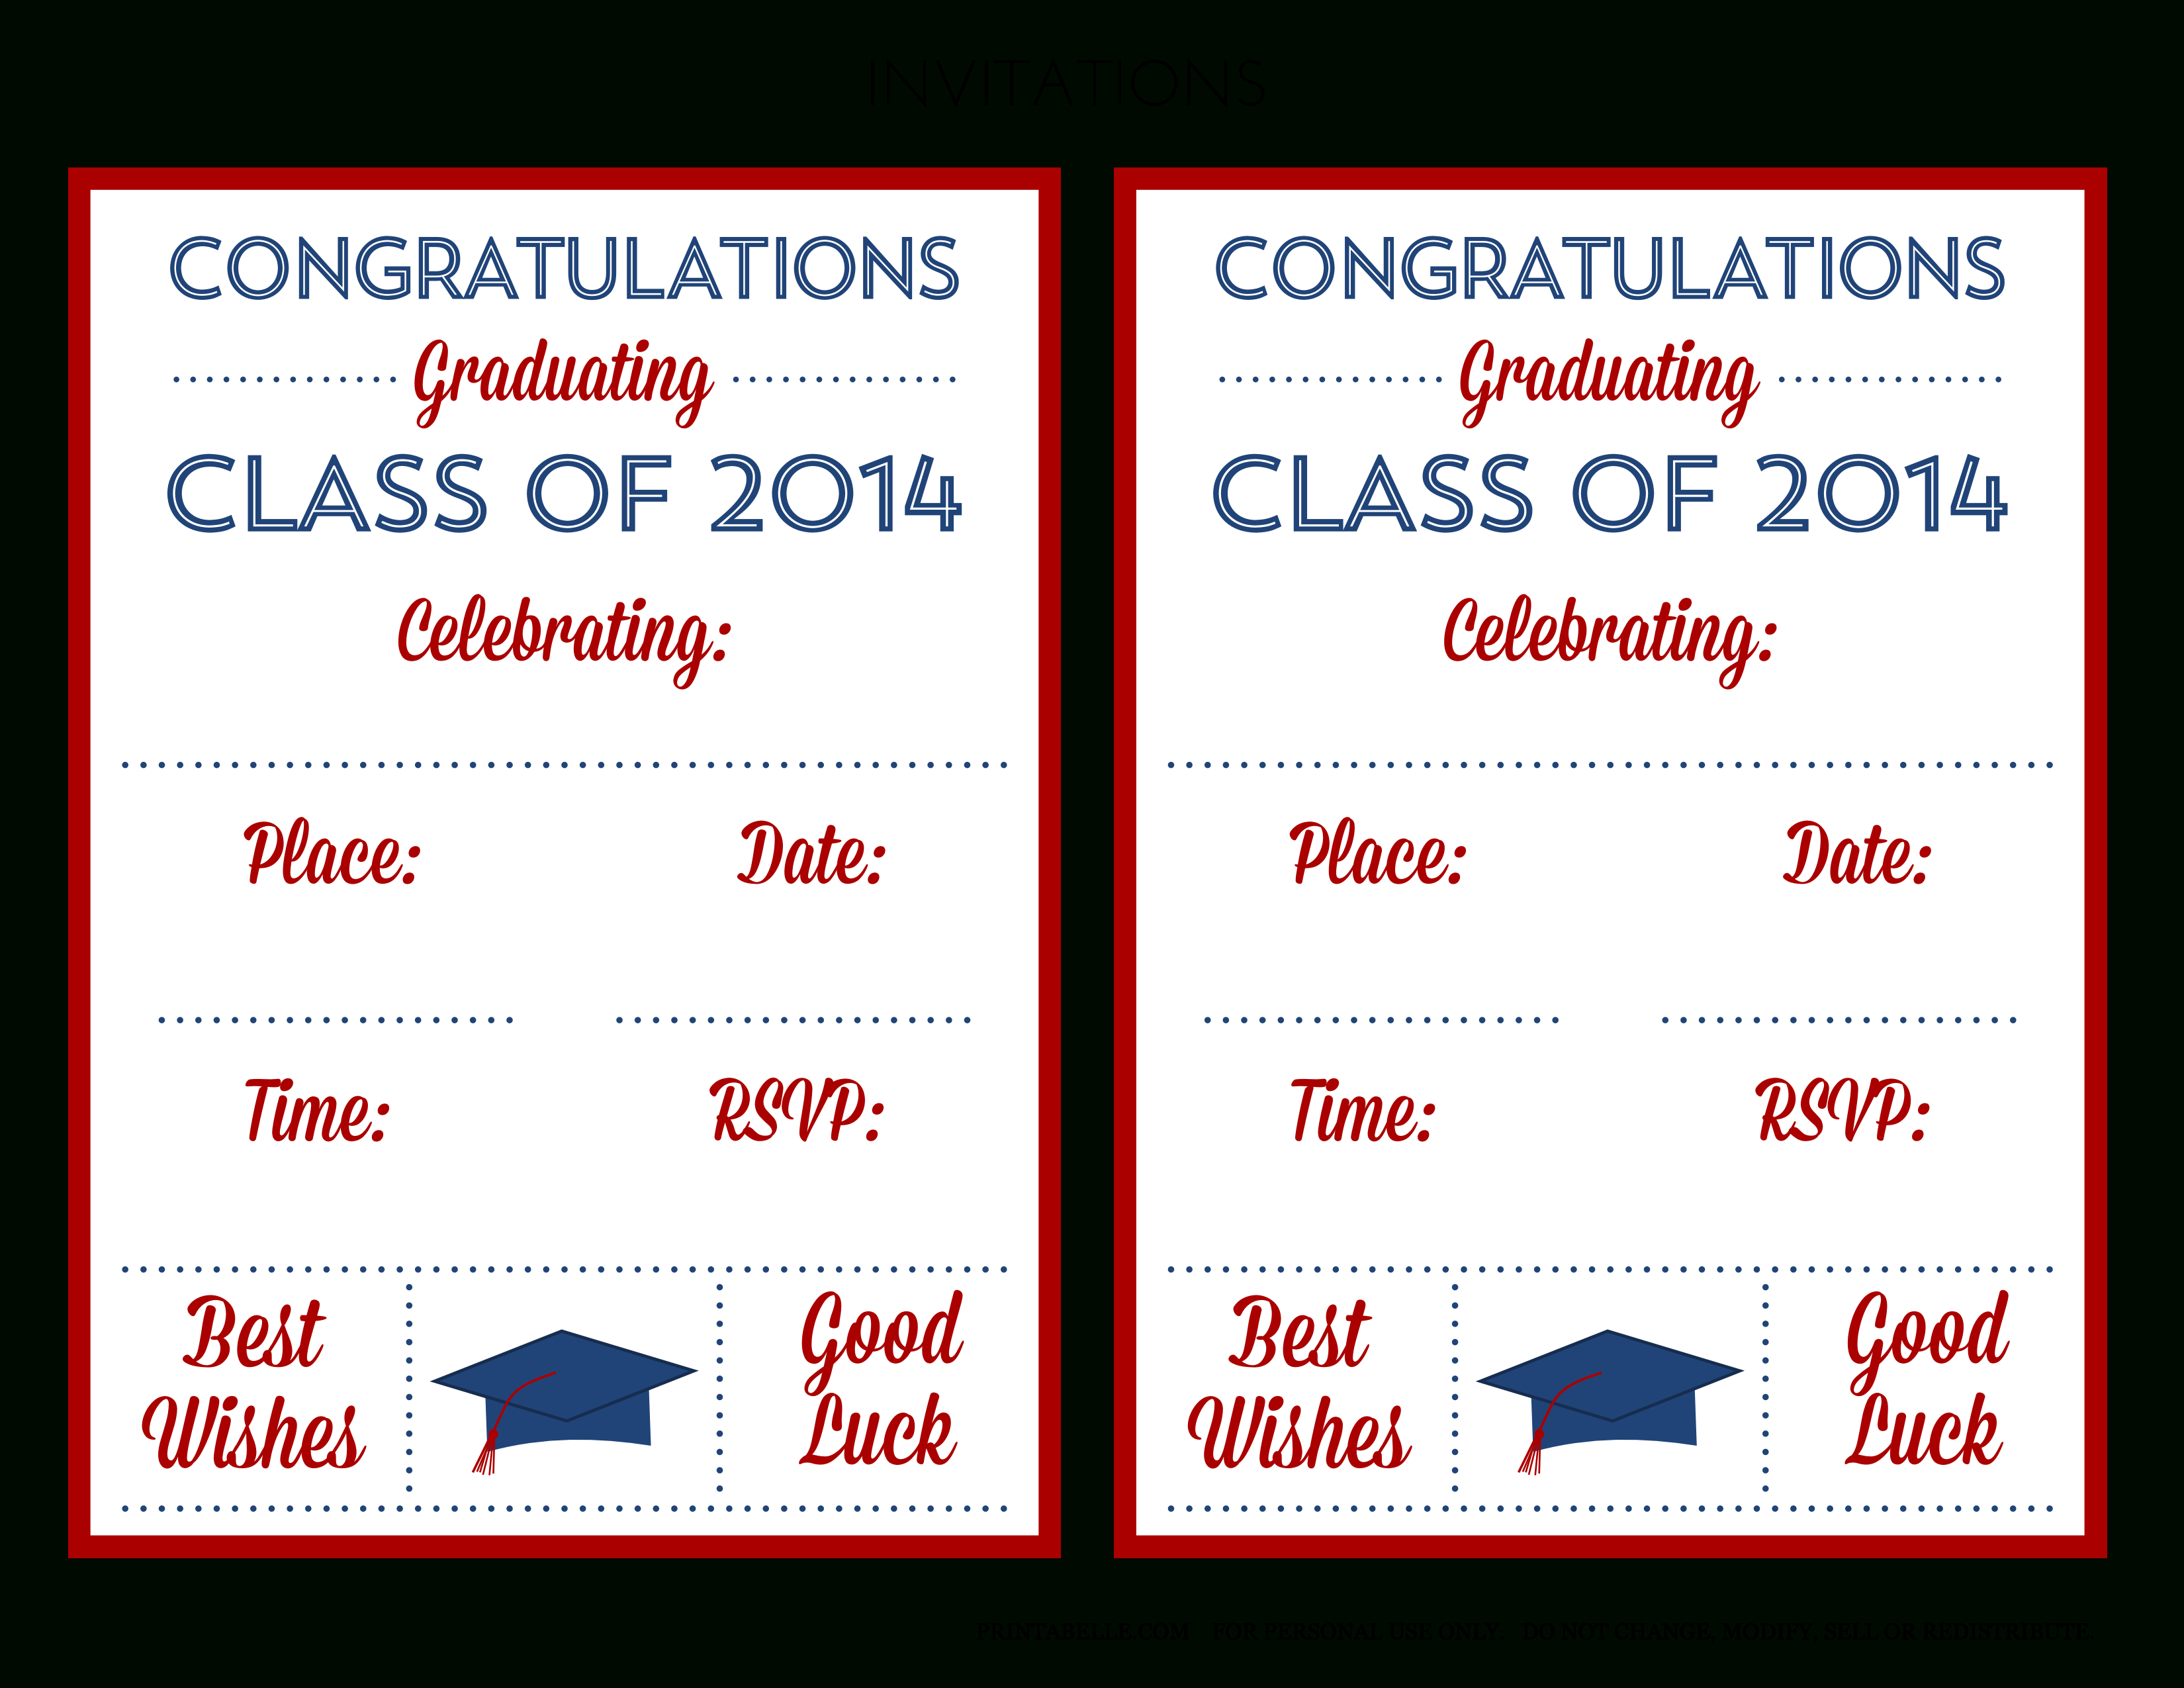 Free 2014 Graduation Party Printables From Printabelle | Catch My Party - Free Printable Graduation Party Invitations 2014